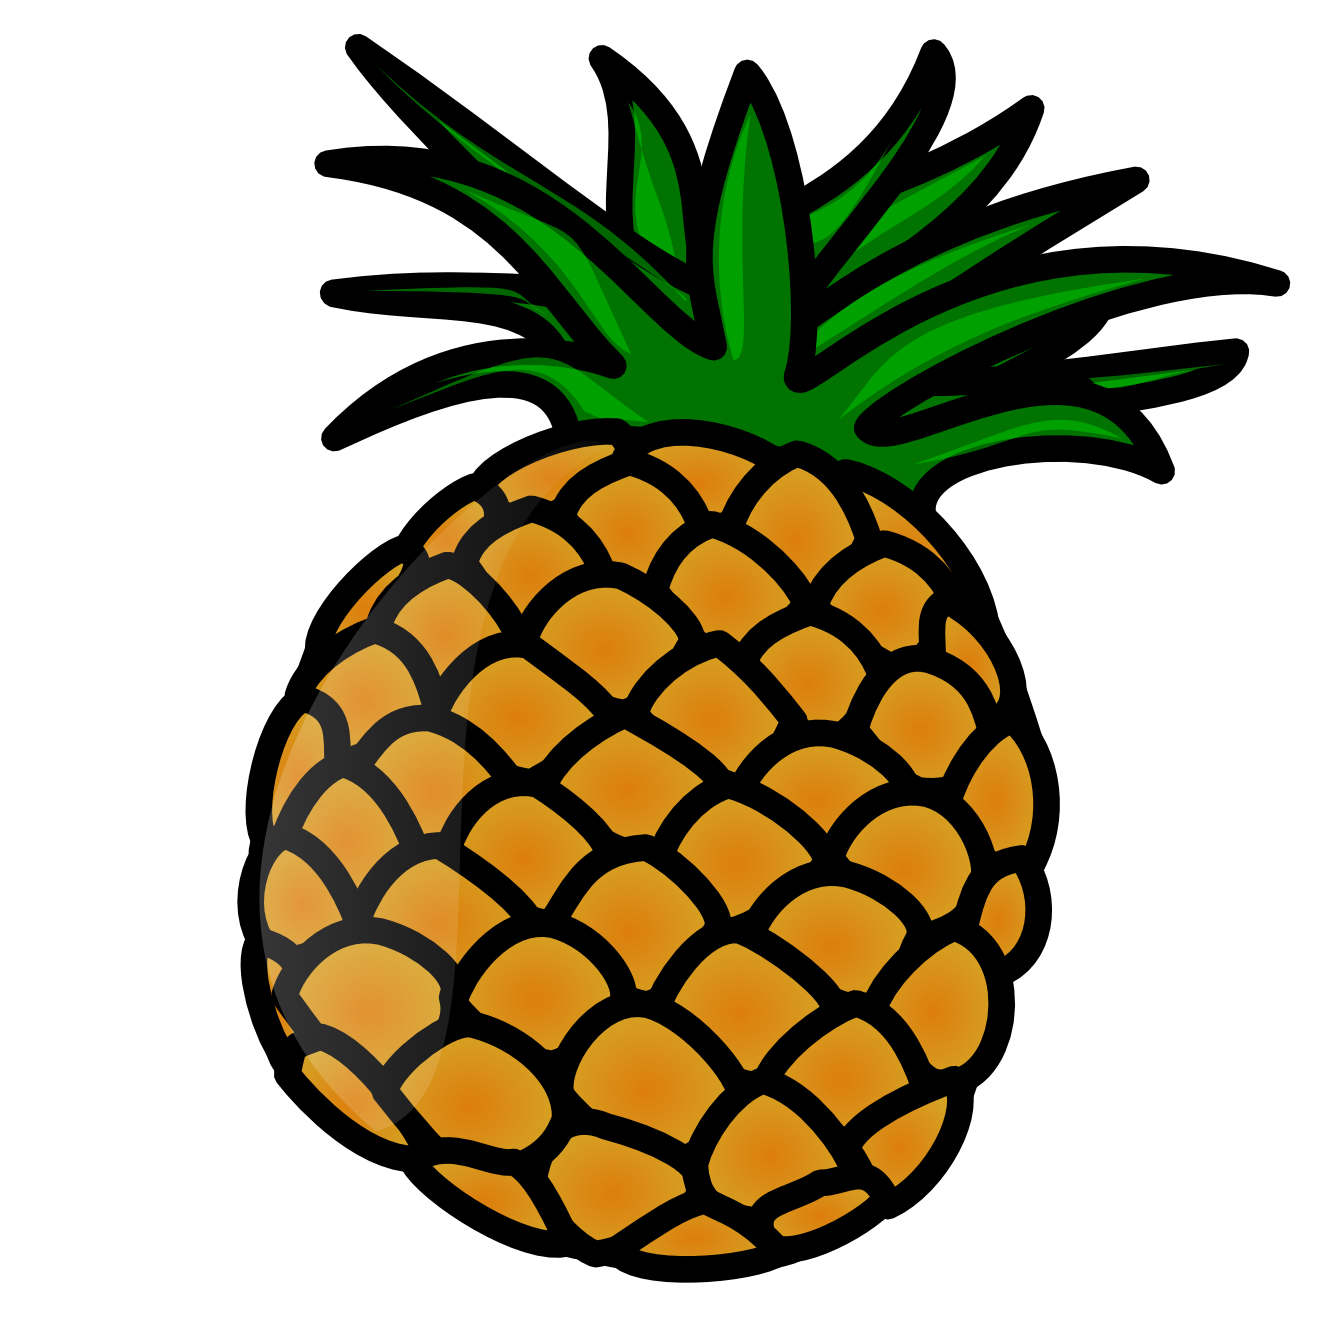 Pineapple clipart free svg library library Pineapple Clip Art Free | Clipart Panda - Free Clipart Images svg library library